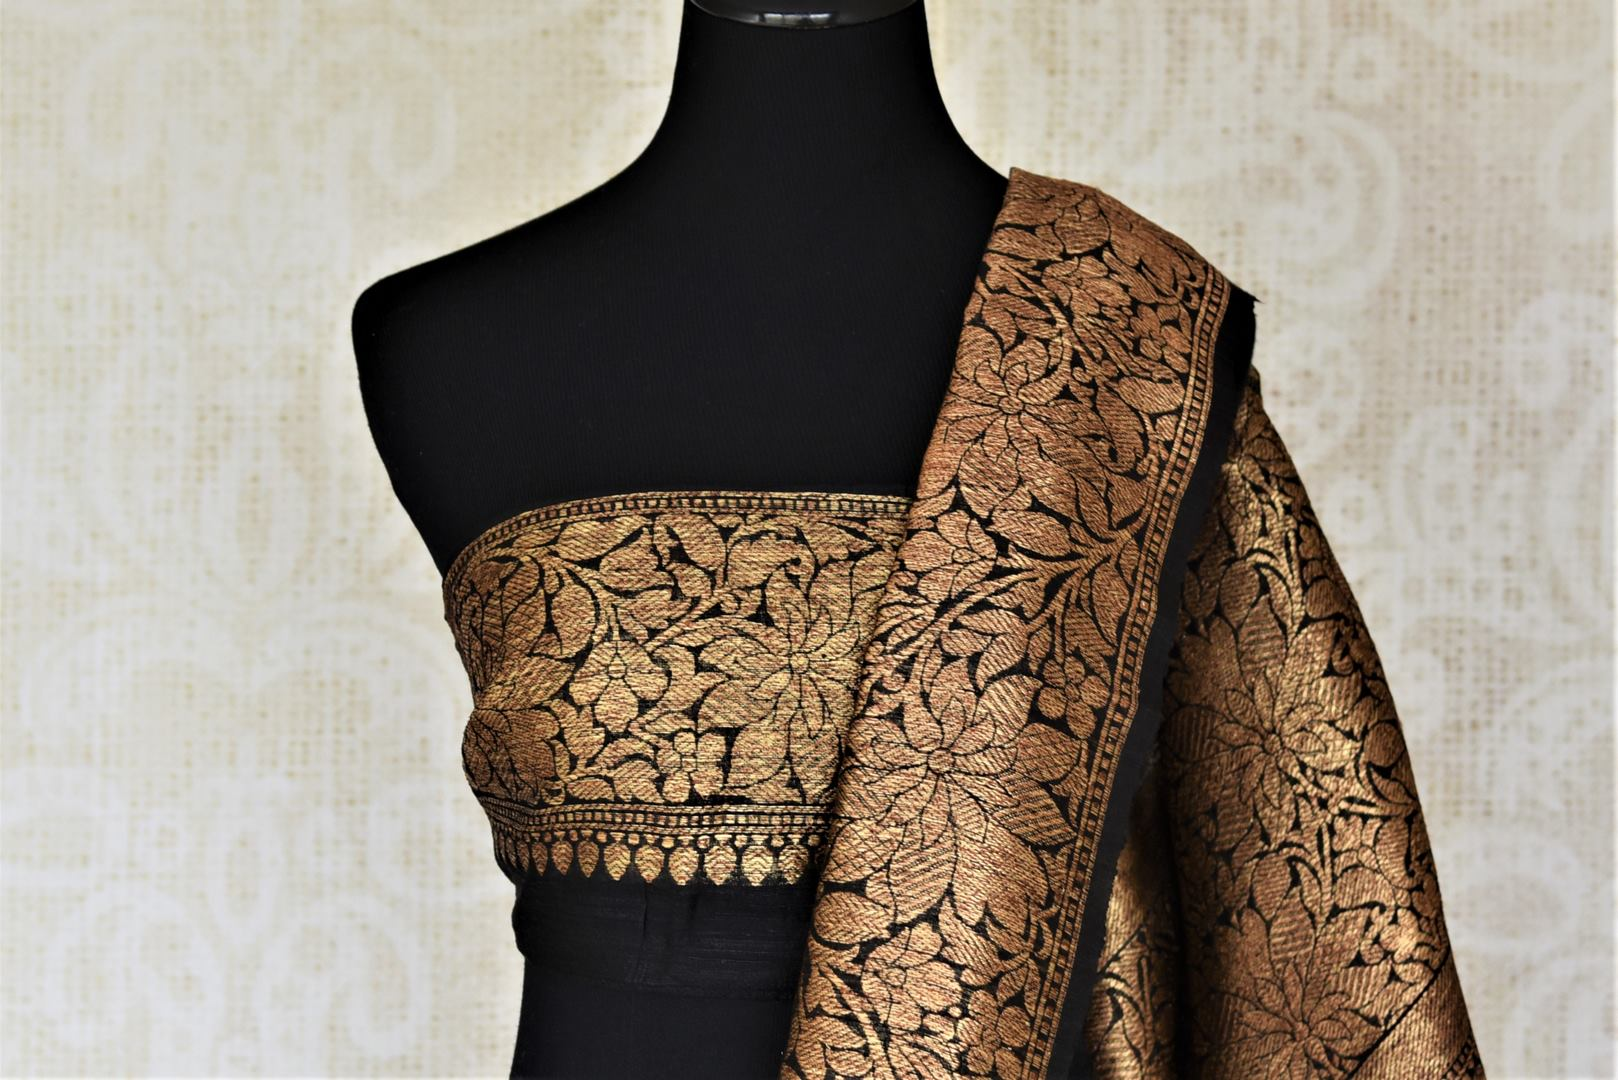 Buy beautiful dark grey tussar Banarasi saree online in USA with antique golden zari border. For Indian women in USA, Pure Elegance Indian fashion store brings an exquisite collection Banarasi sarees, Banarasi silk sarees, tussar sarees, zari work sarees, pure silk sarees all under one roof. Shop online now.-blouse pallu